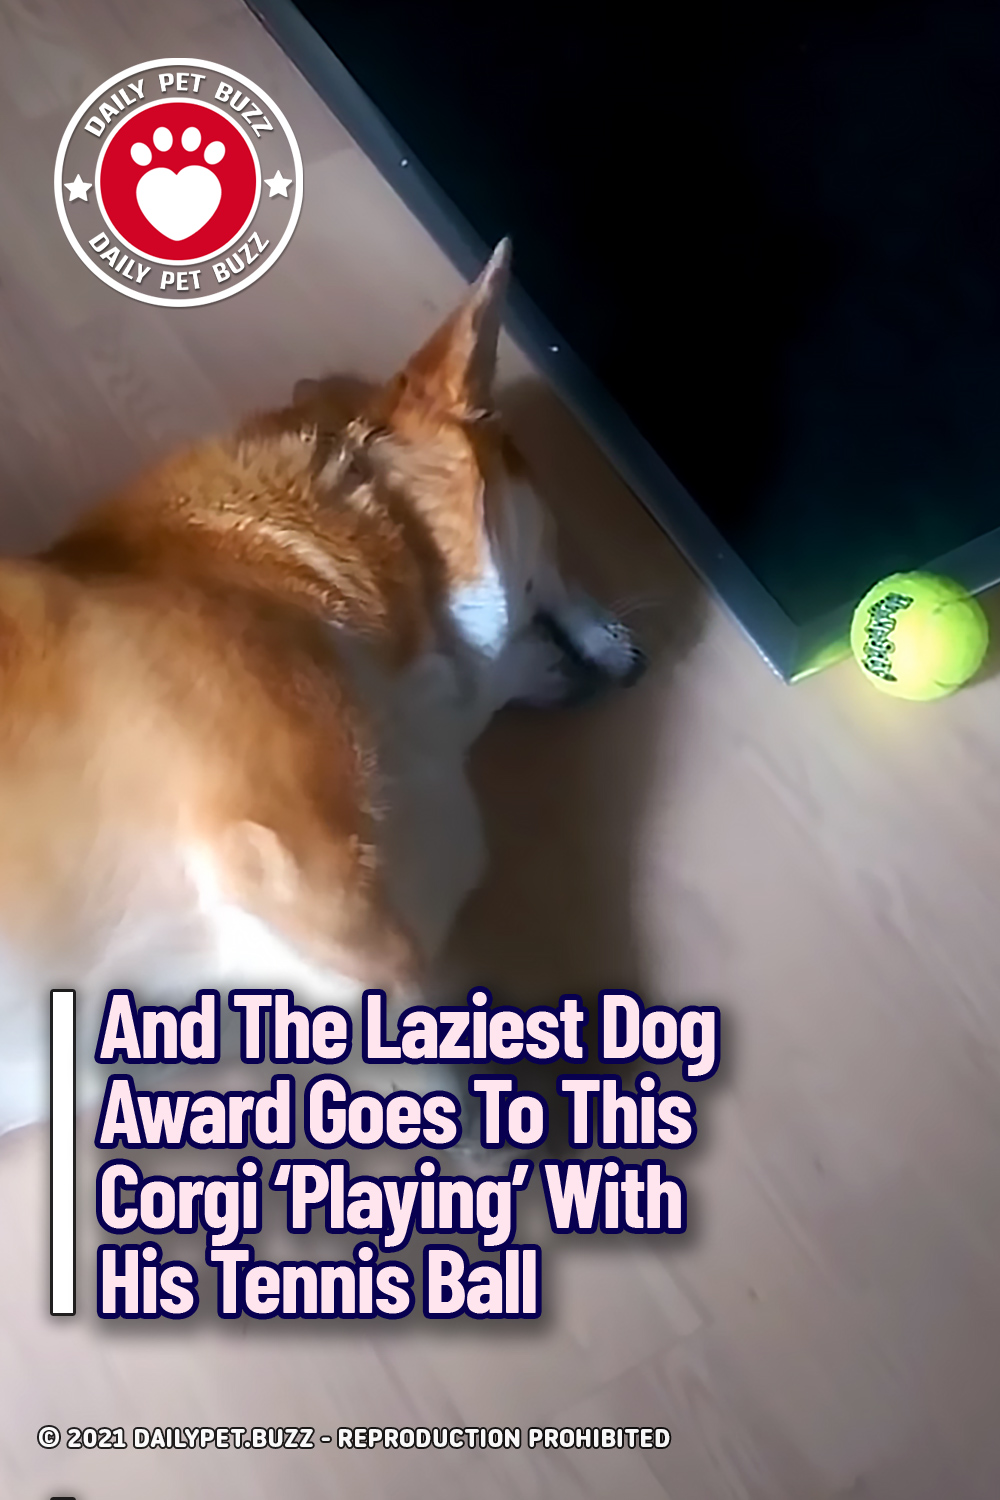 And The Laziest Dog Award Goes To This Corgi \'Playing\' With His Tennis Ball